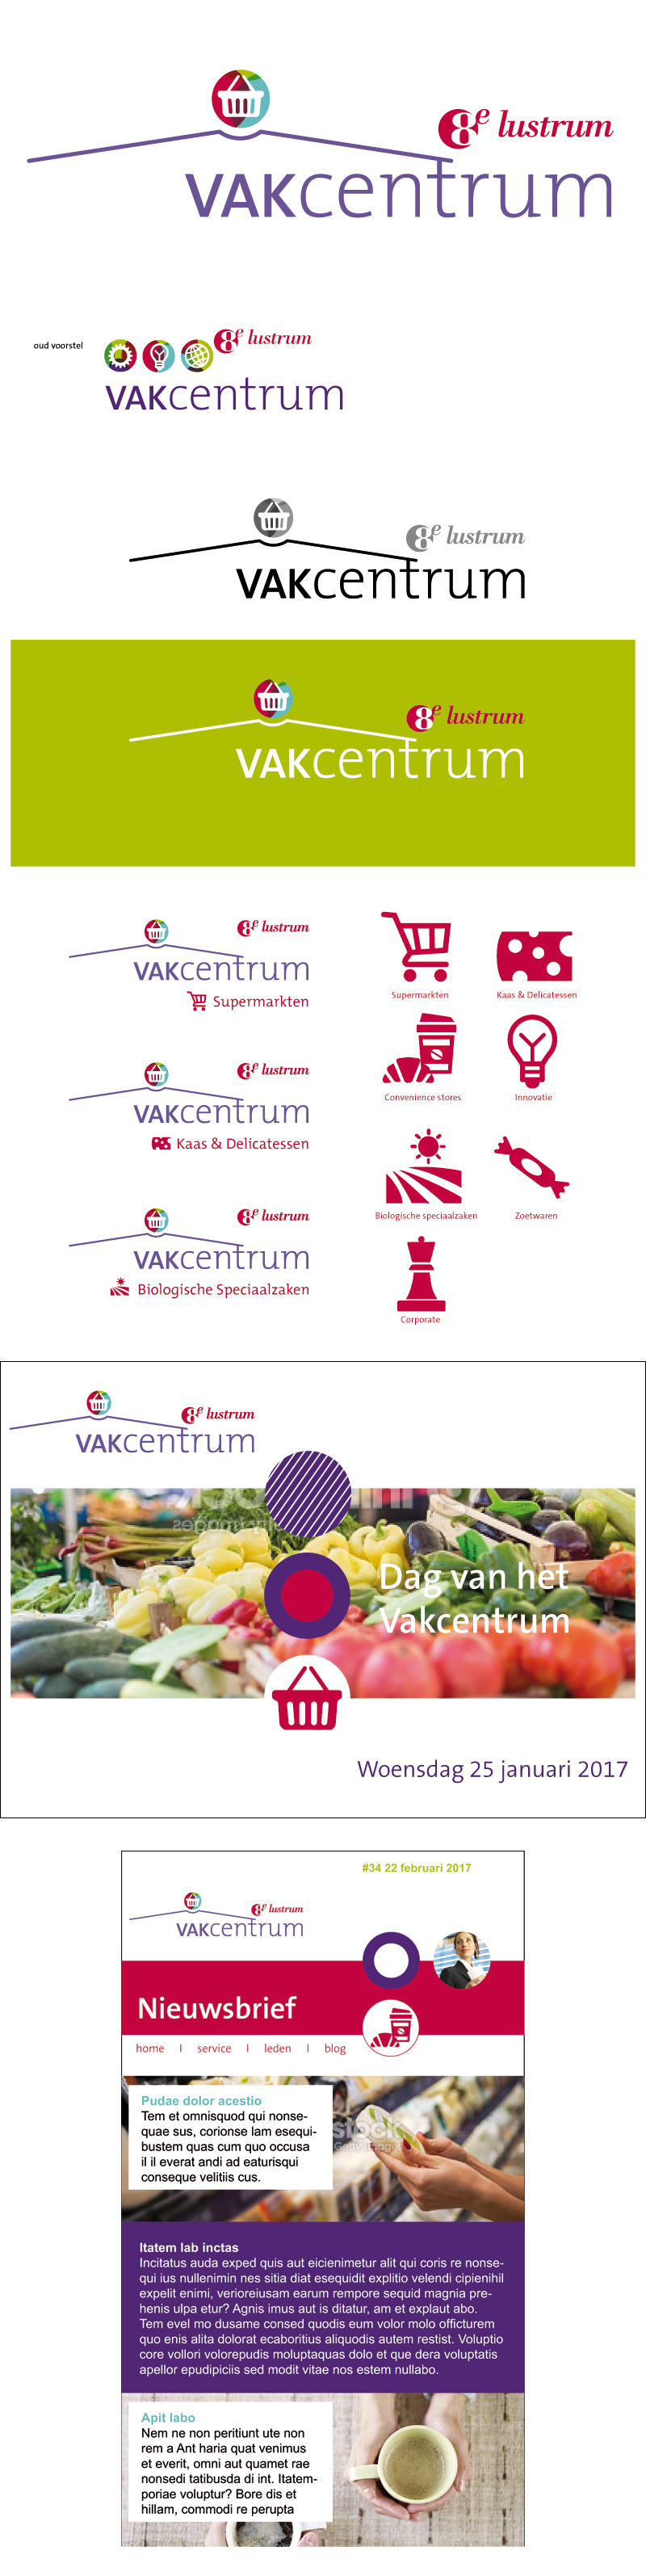 infographic_vakcentrum